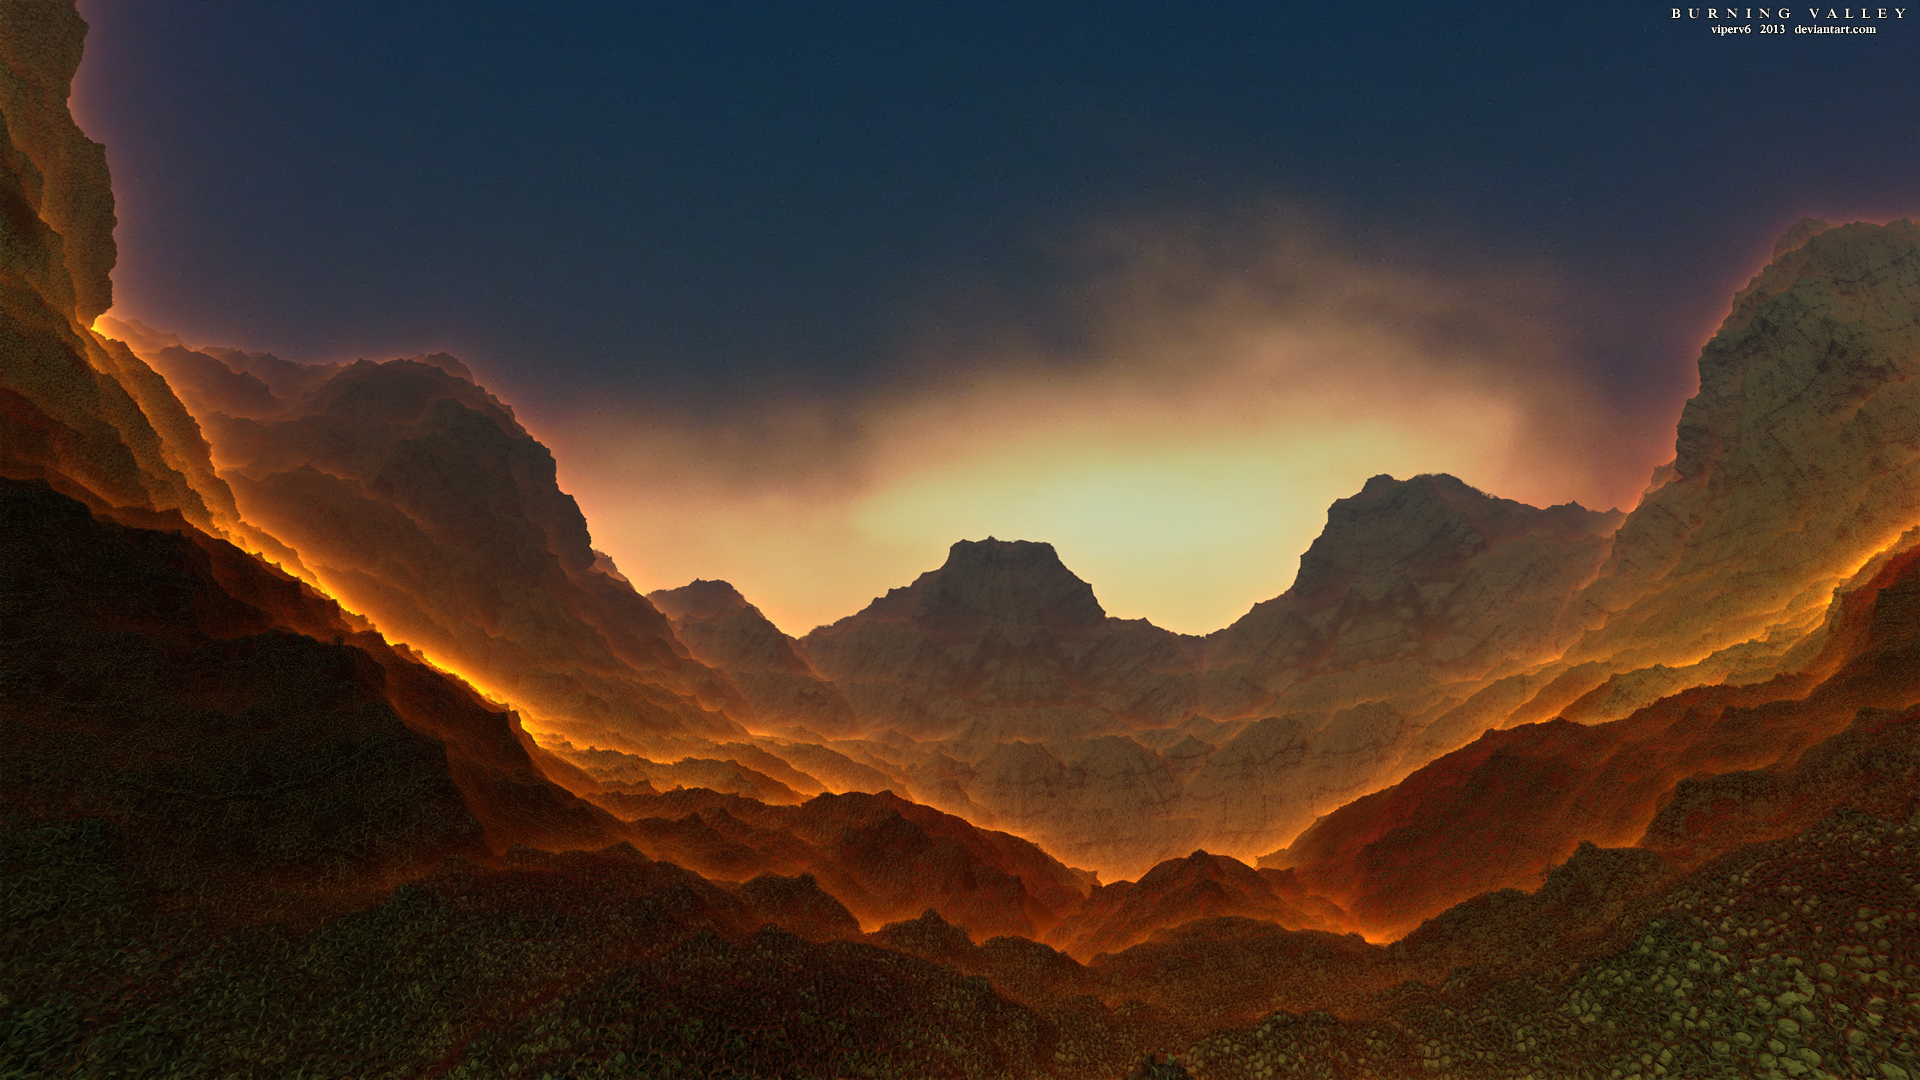 Burning Valley by viperv6